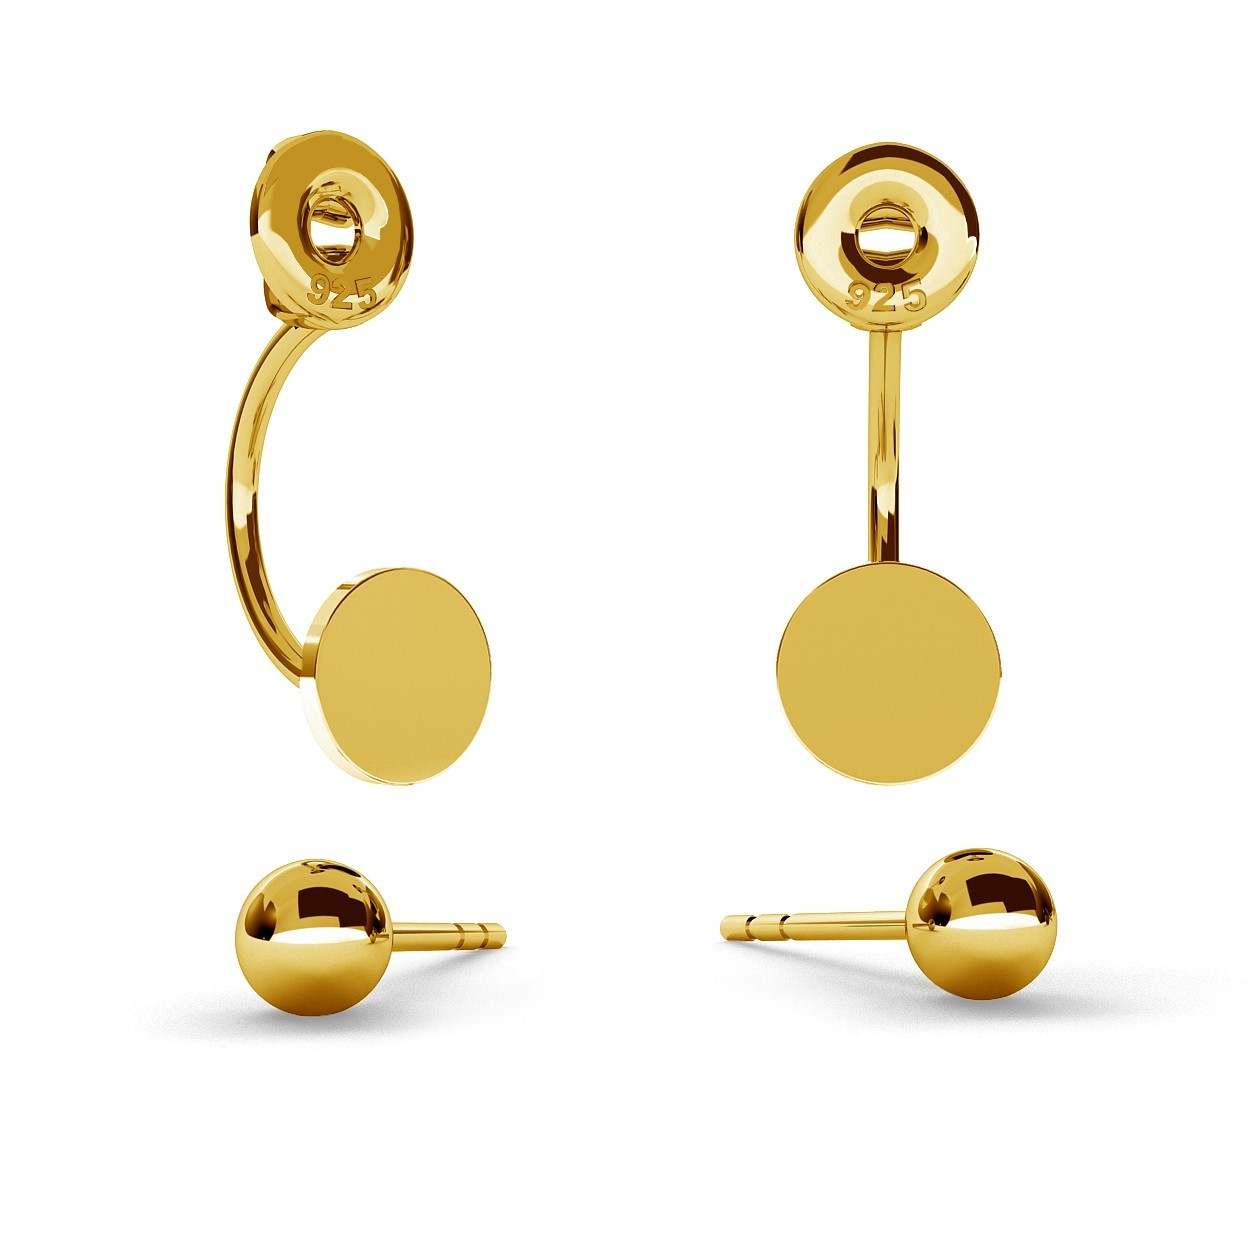 SWING EARRINGS BALL & CIRCLE WITH ENGRAVE